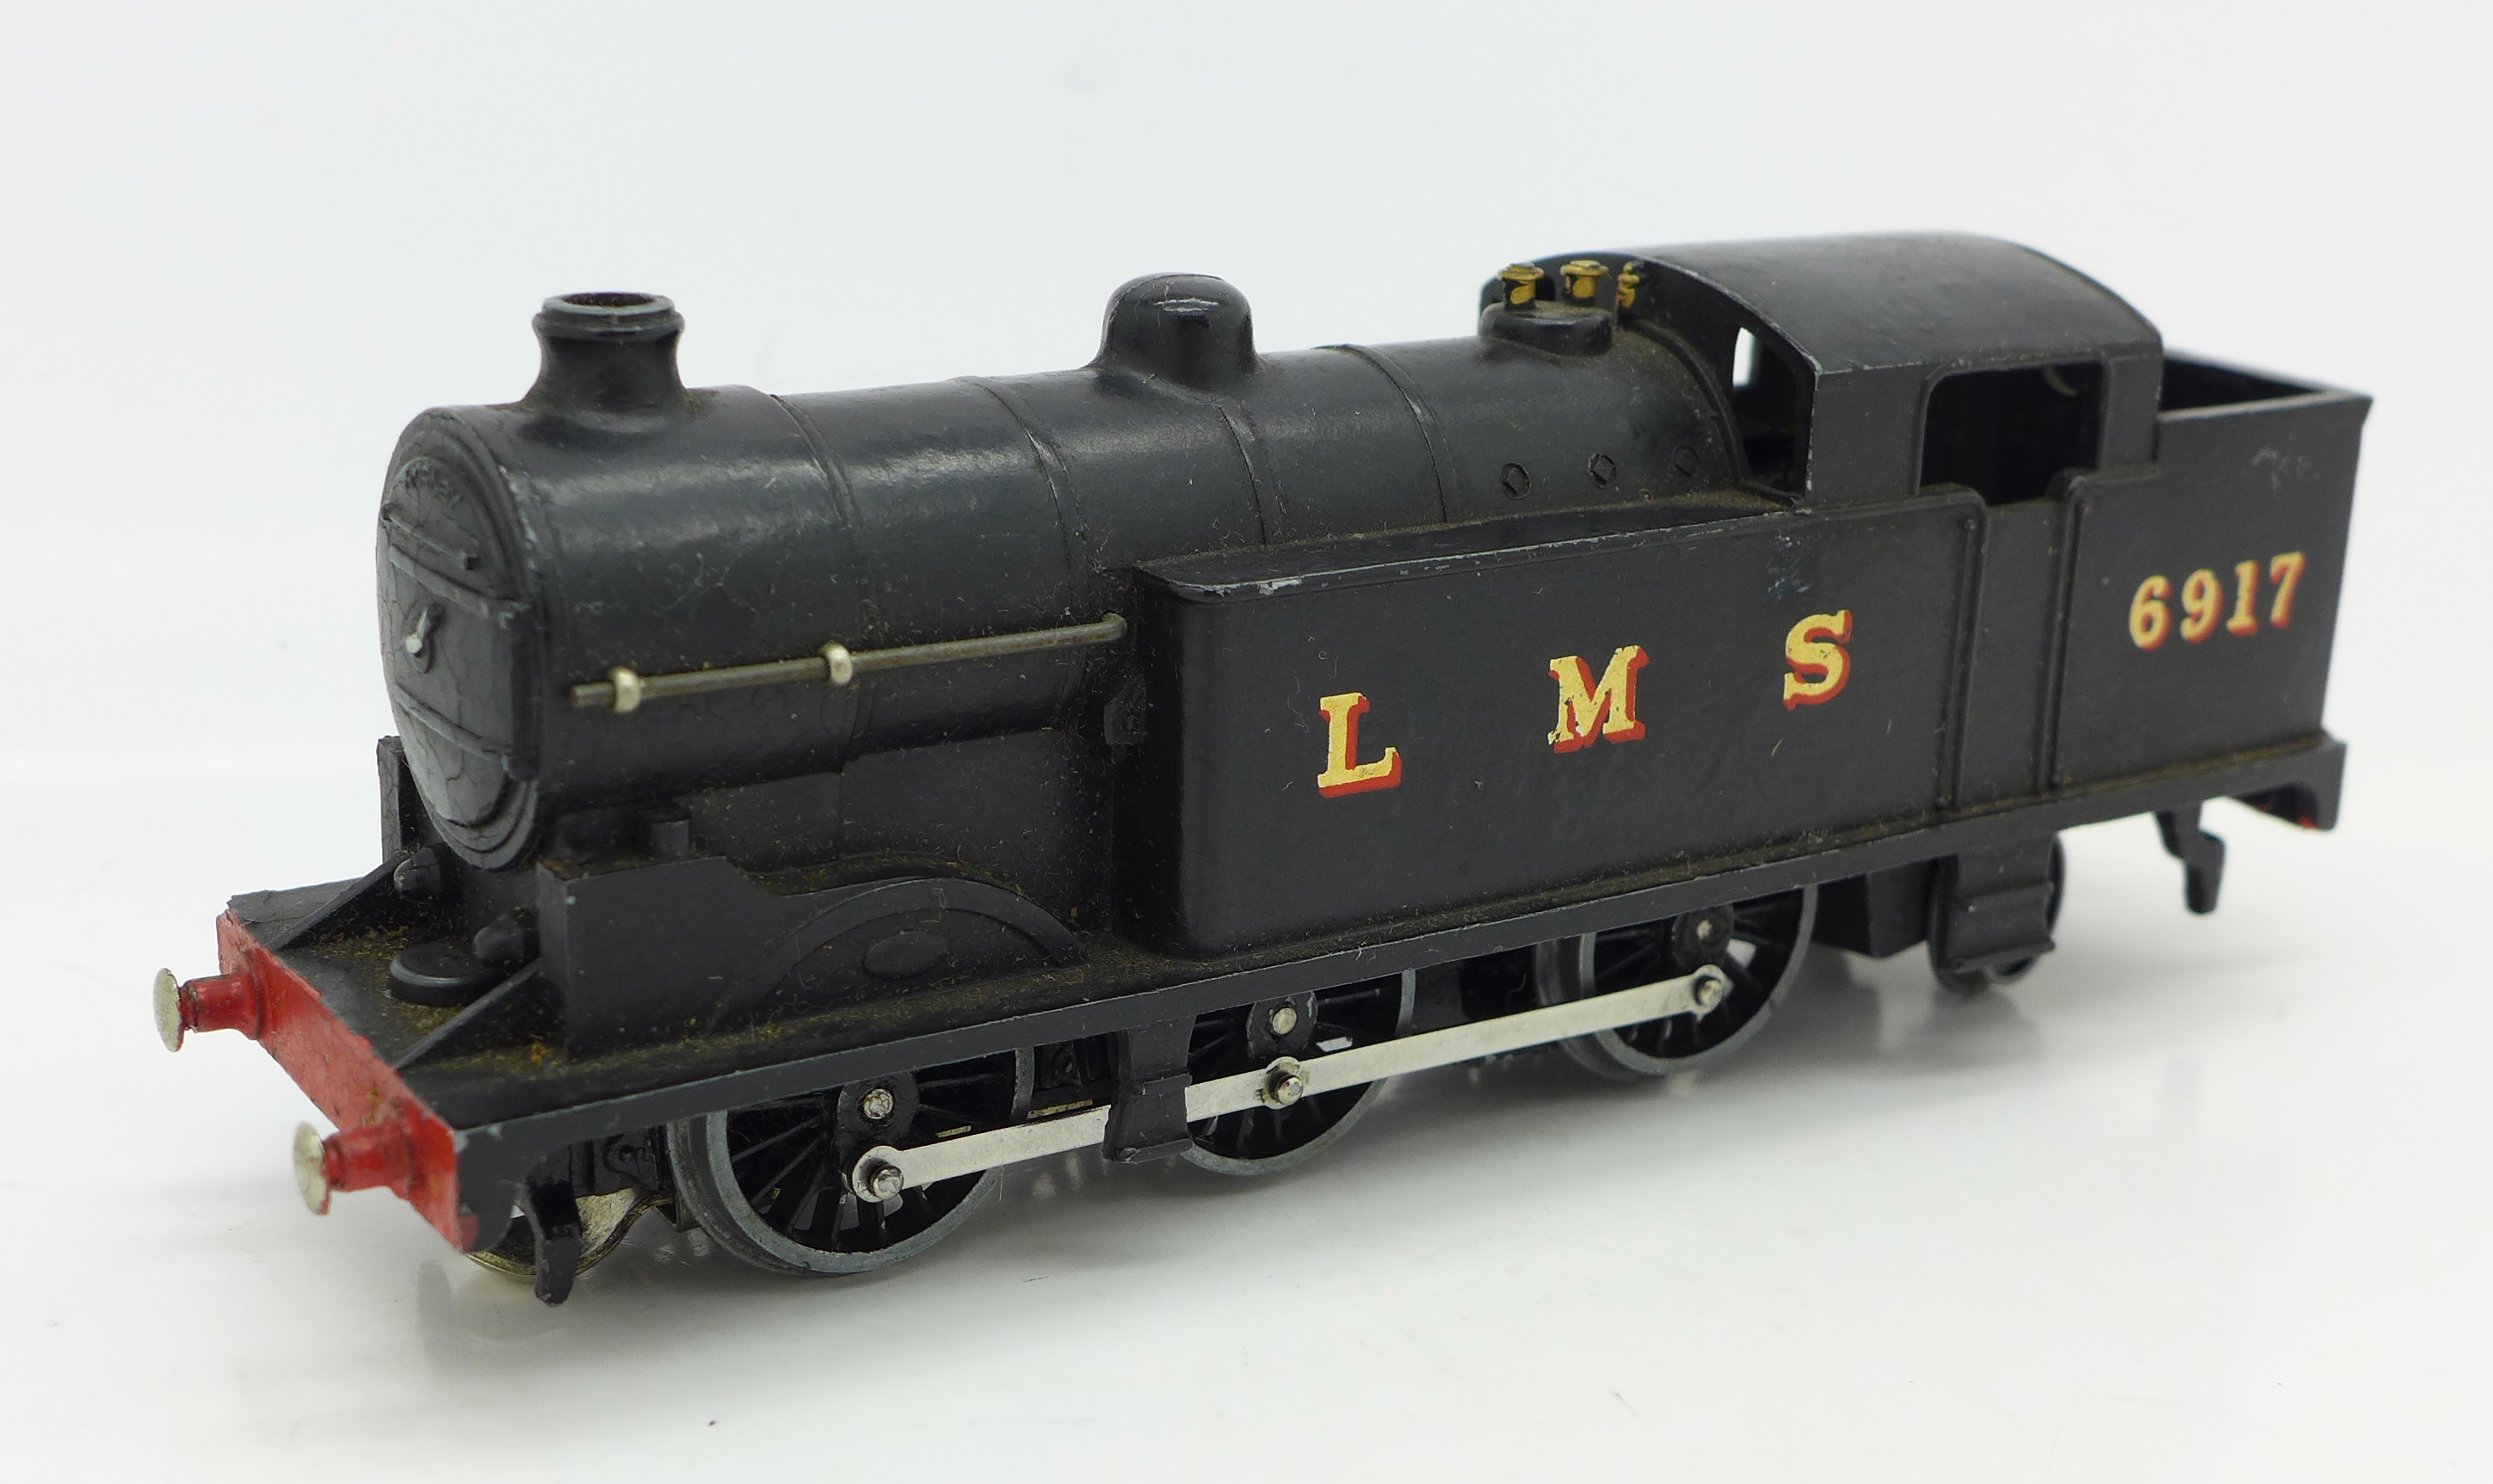 Lot 623 - A pre-war Hornby Dublo LMS 6917 tank locomotive